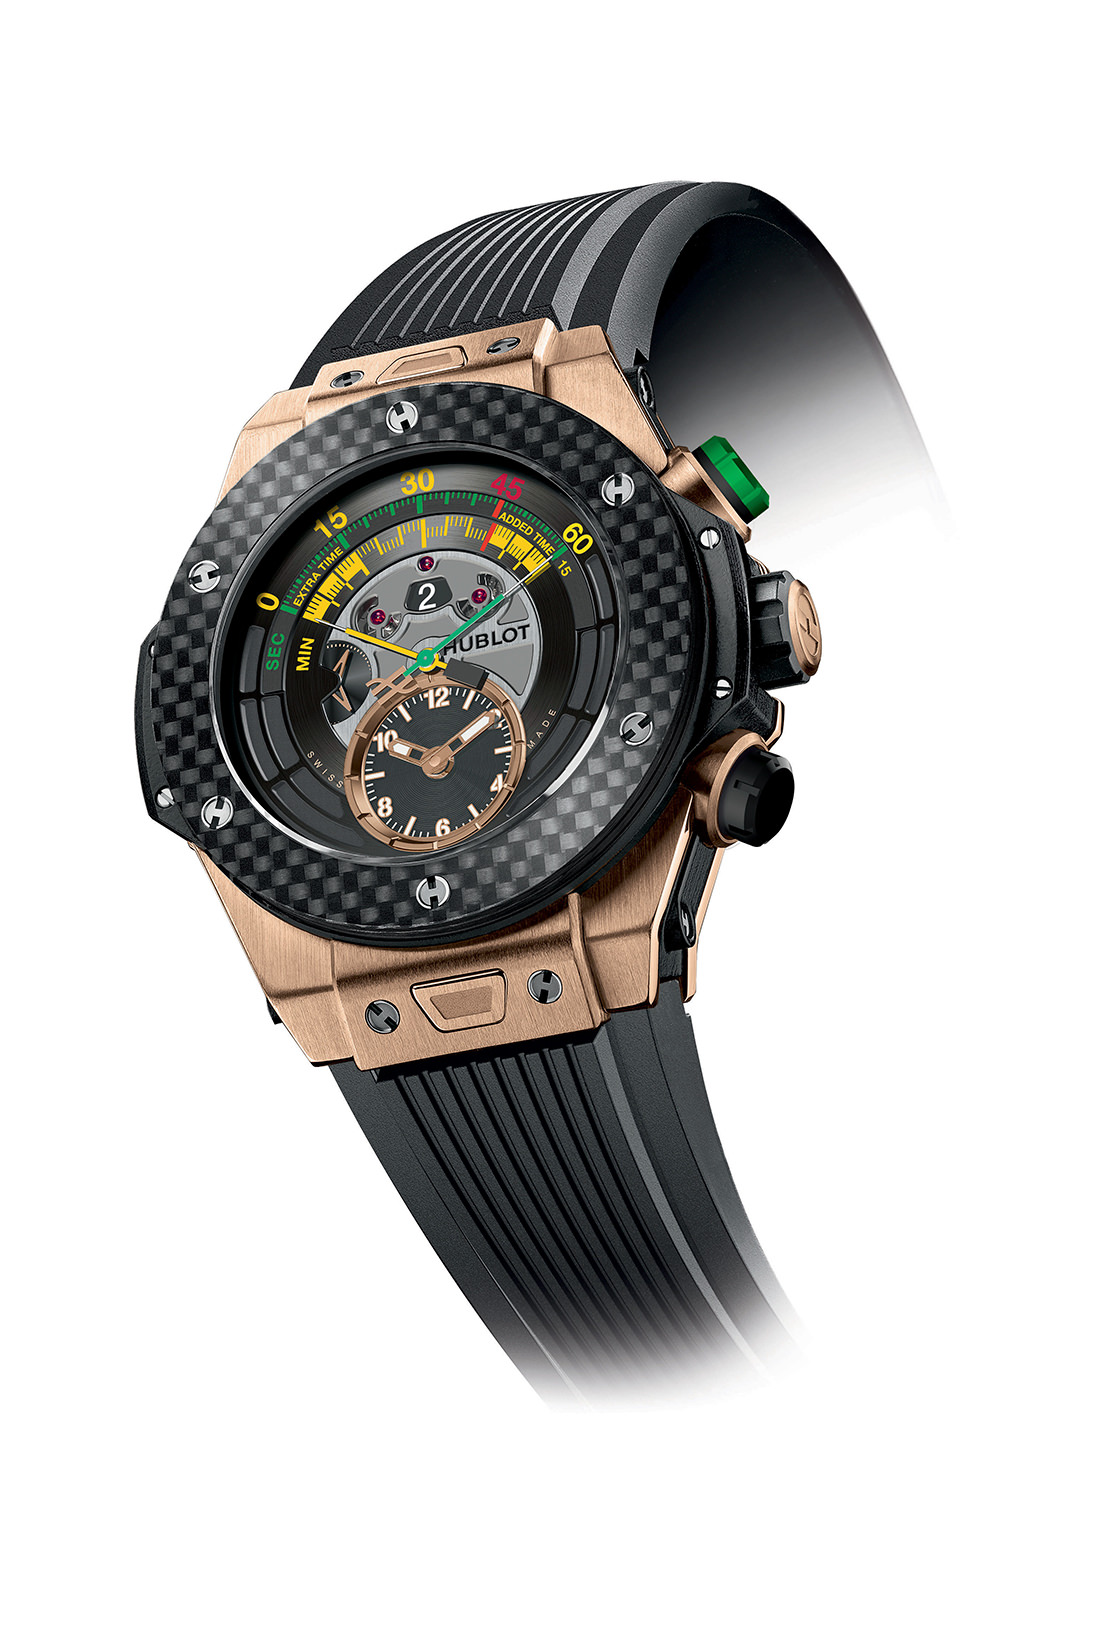 hublot-big-bang-unico-chrono-bi-retrograde-9